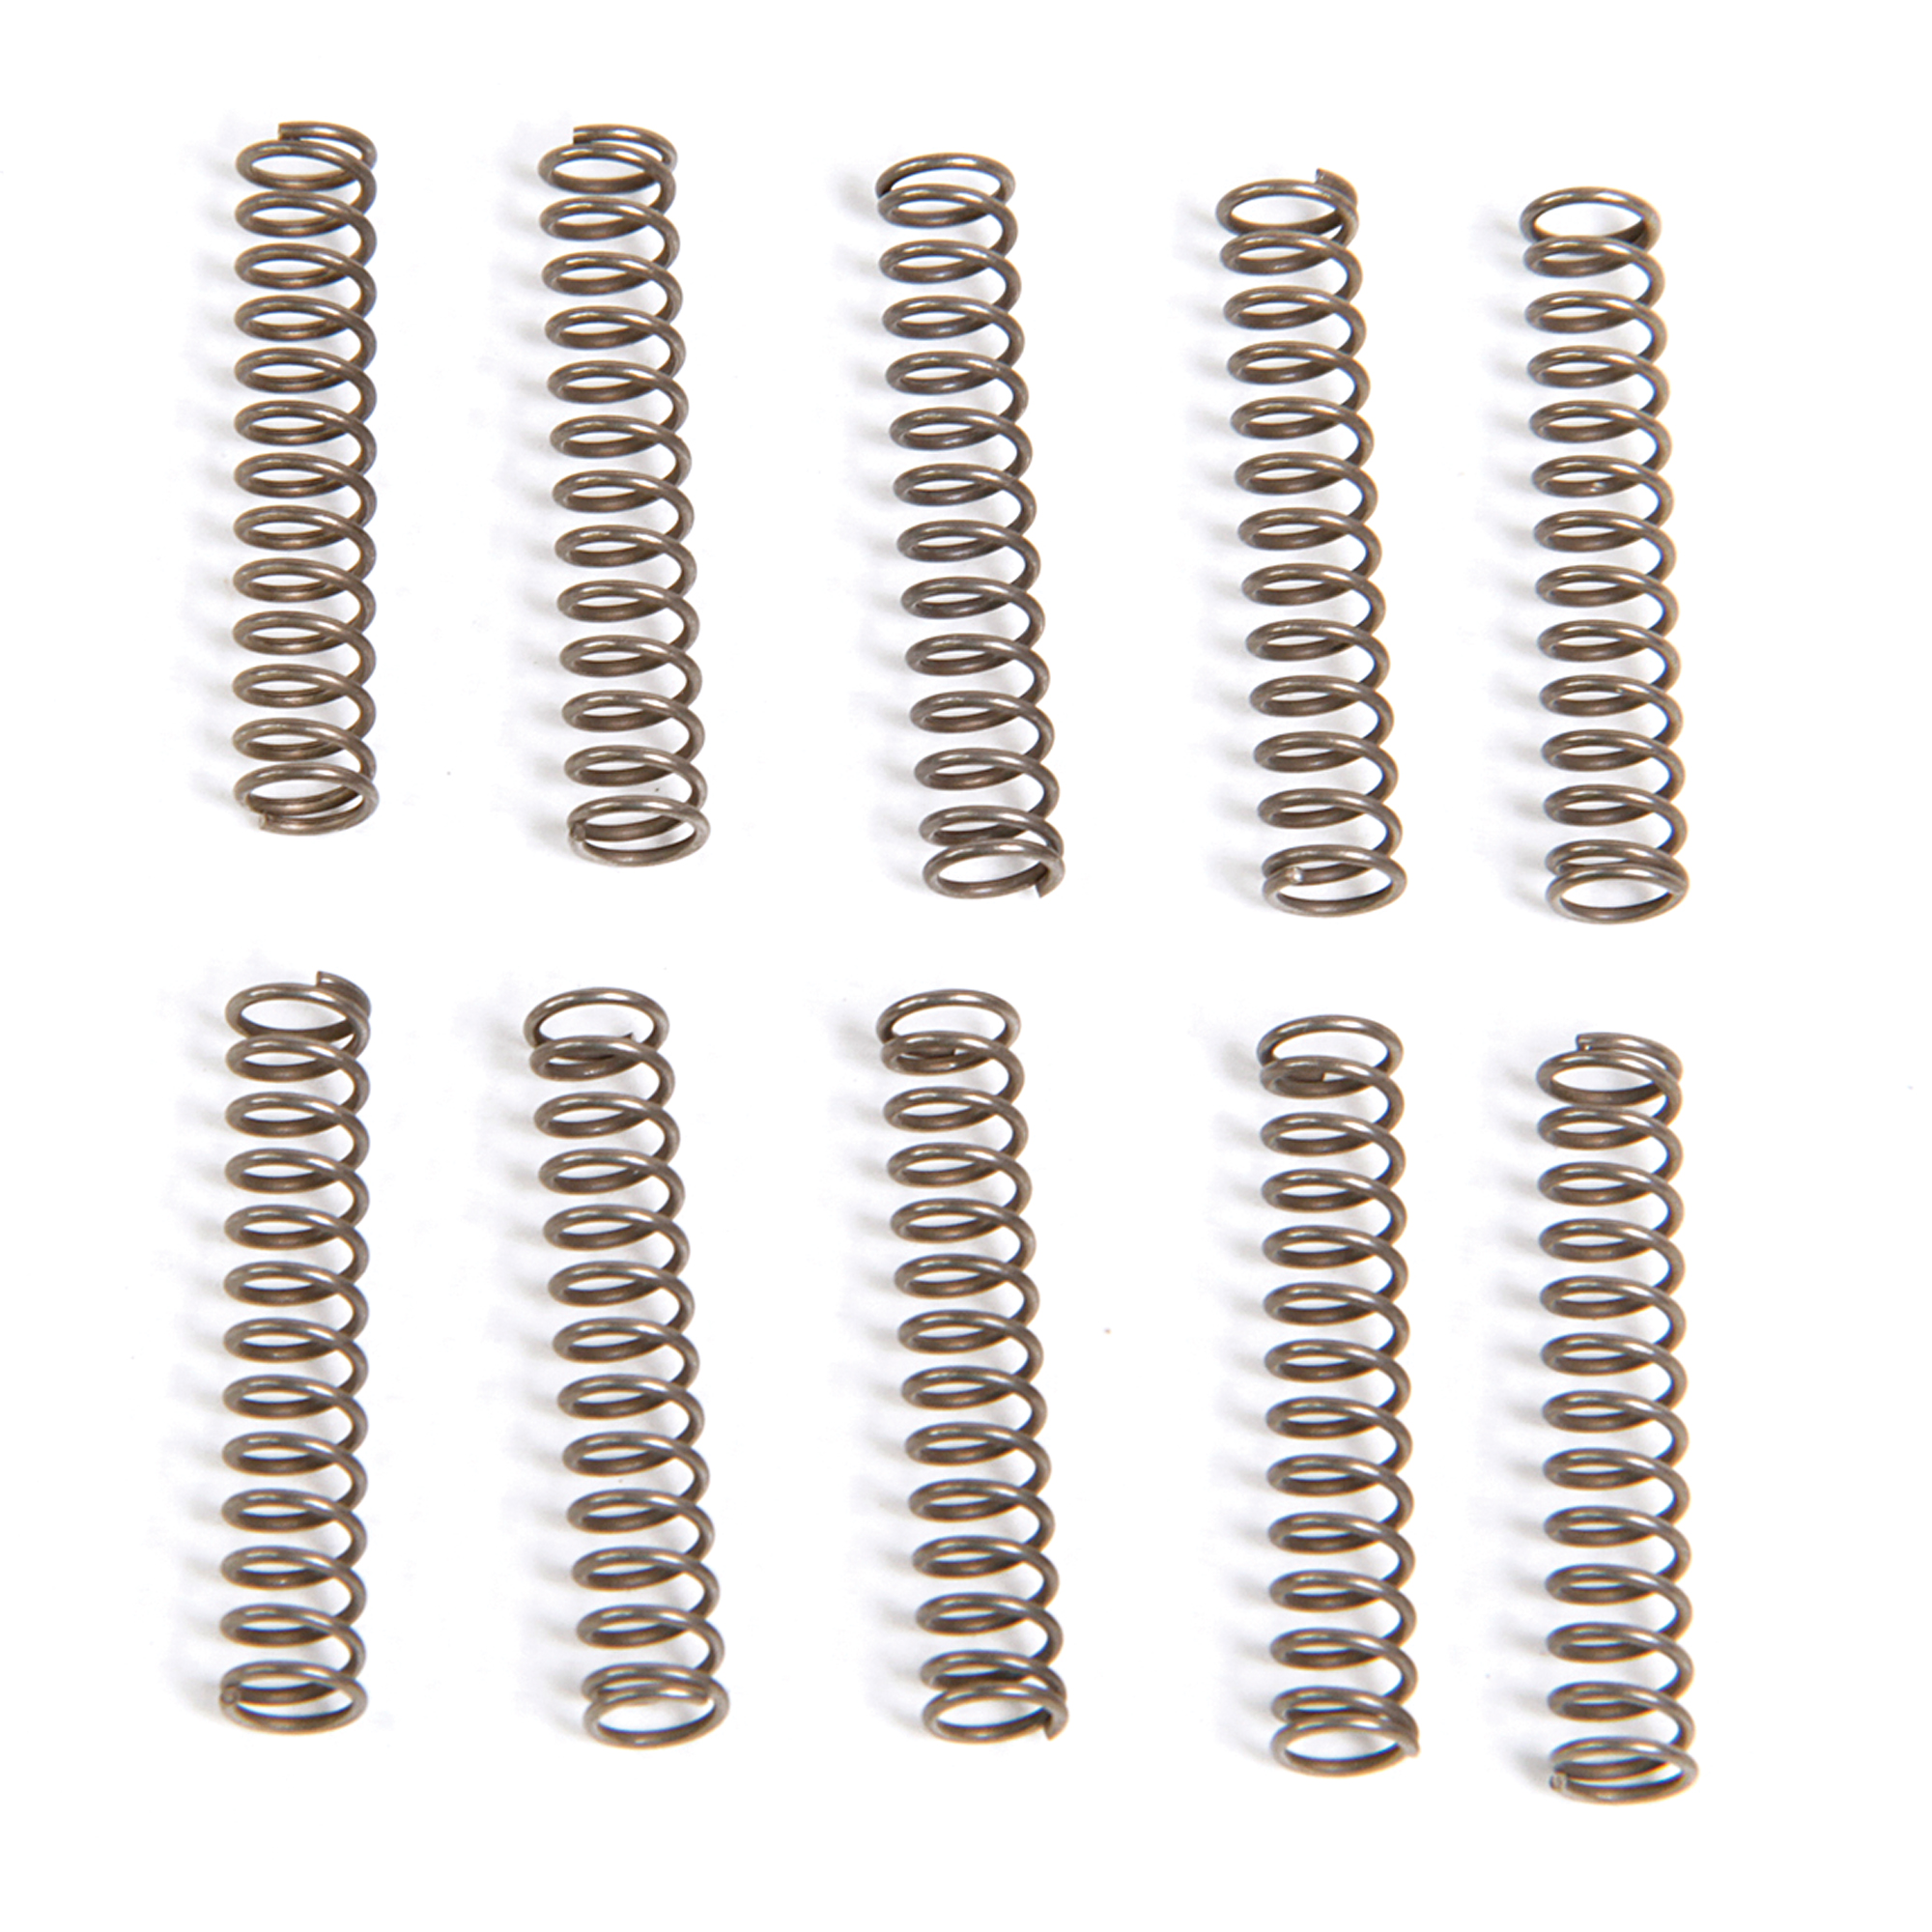 This is a 10-pack of LBE AR-15 buffer retaining pin springs. Made in the USA.